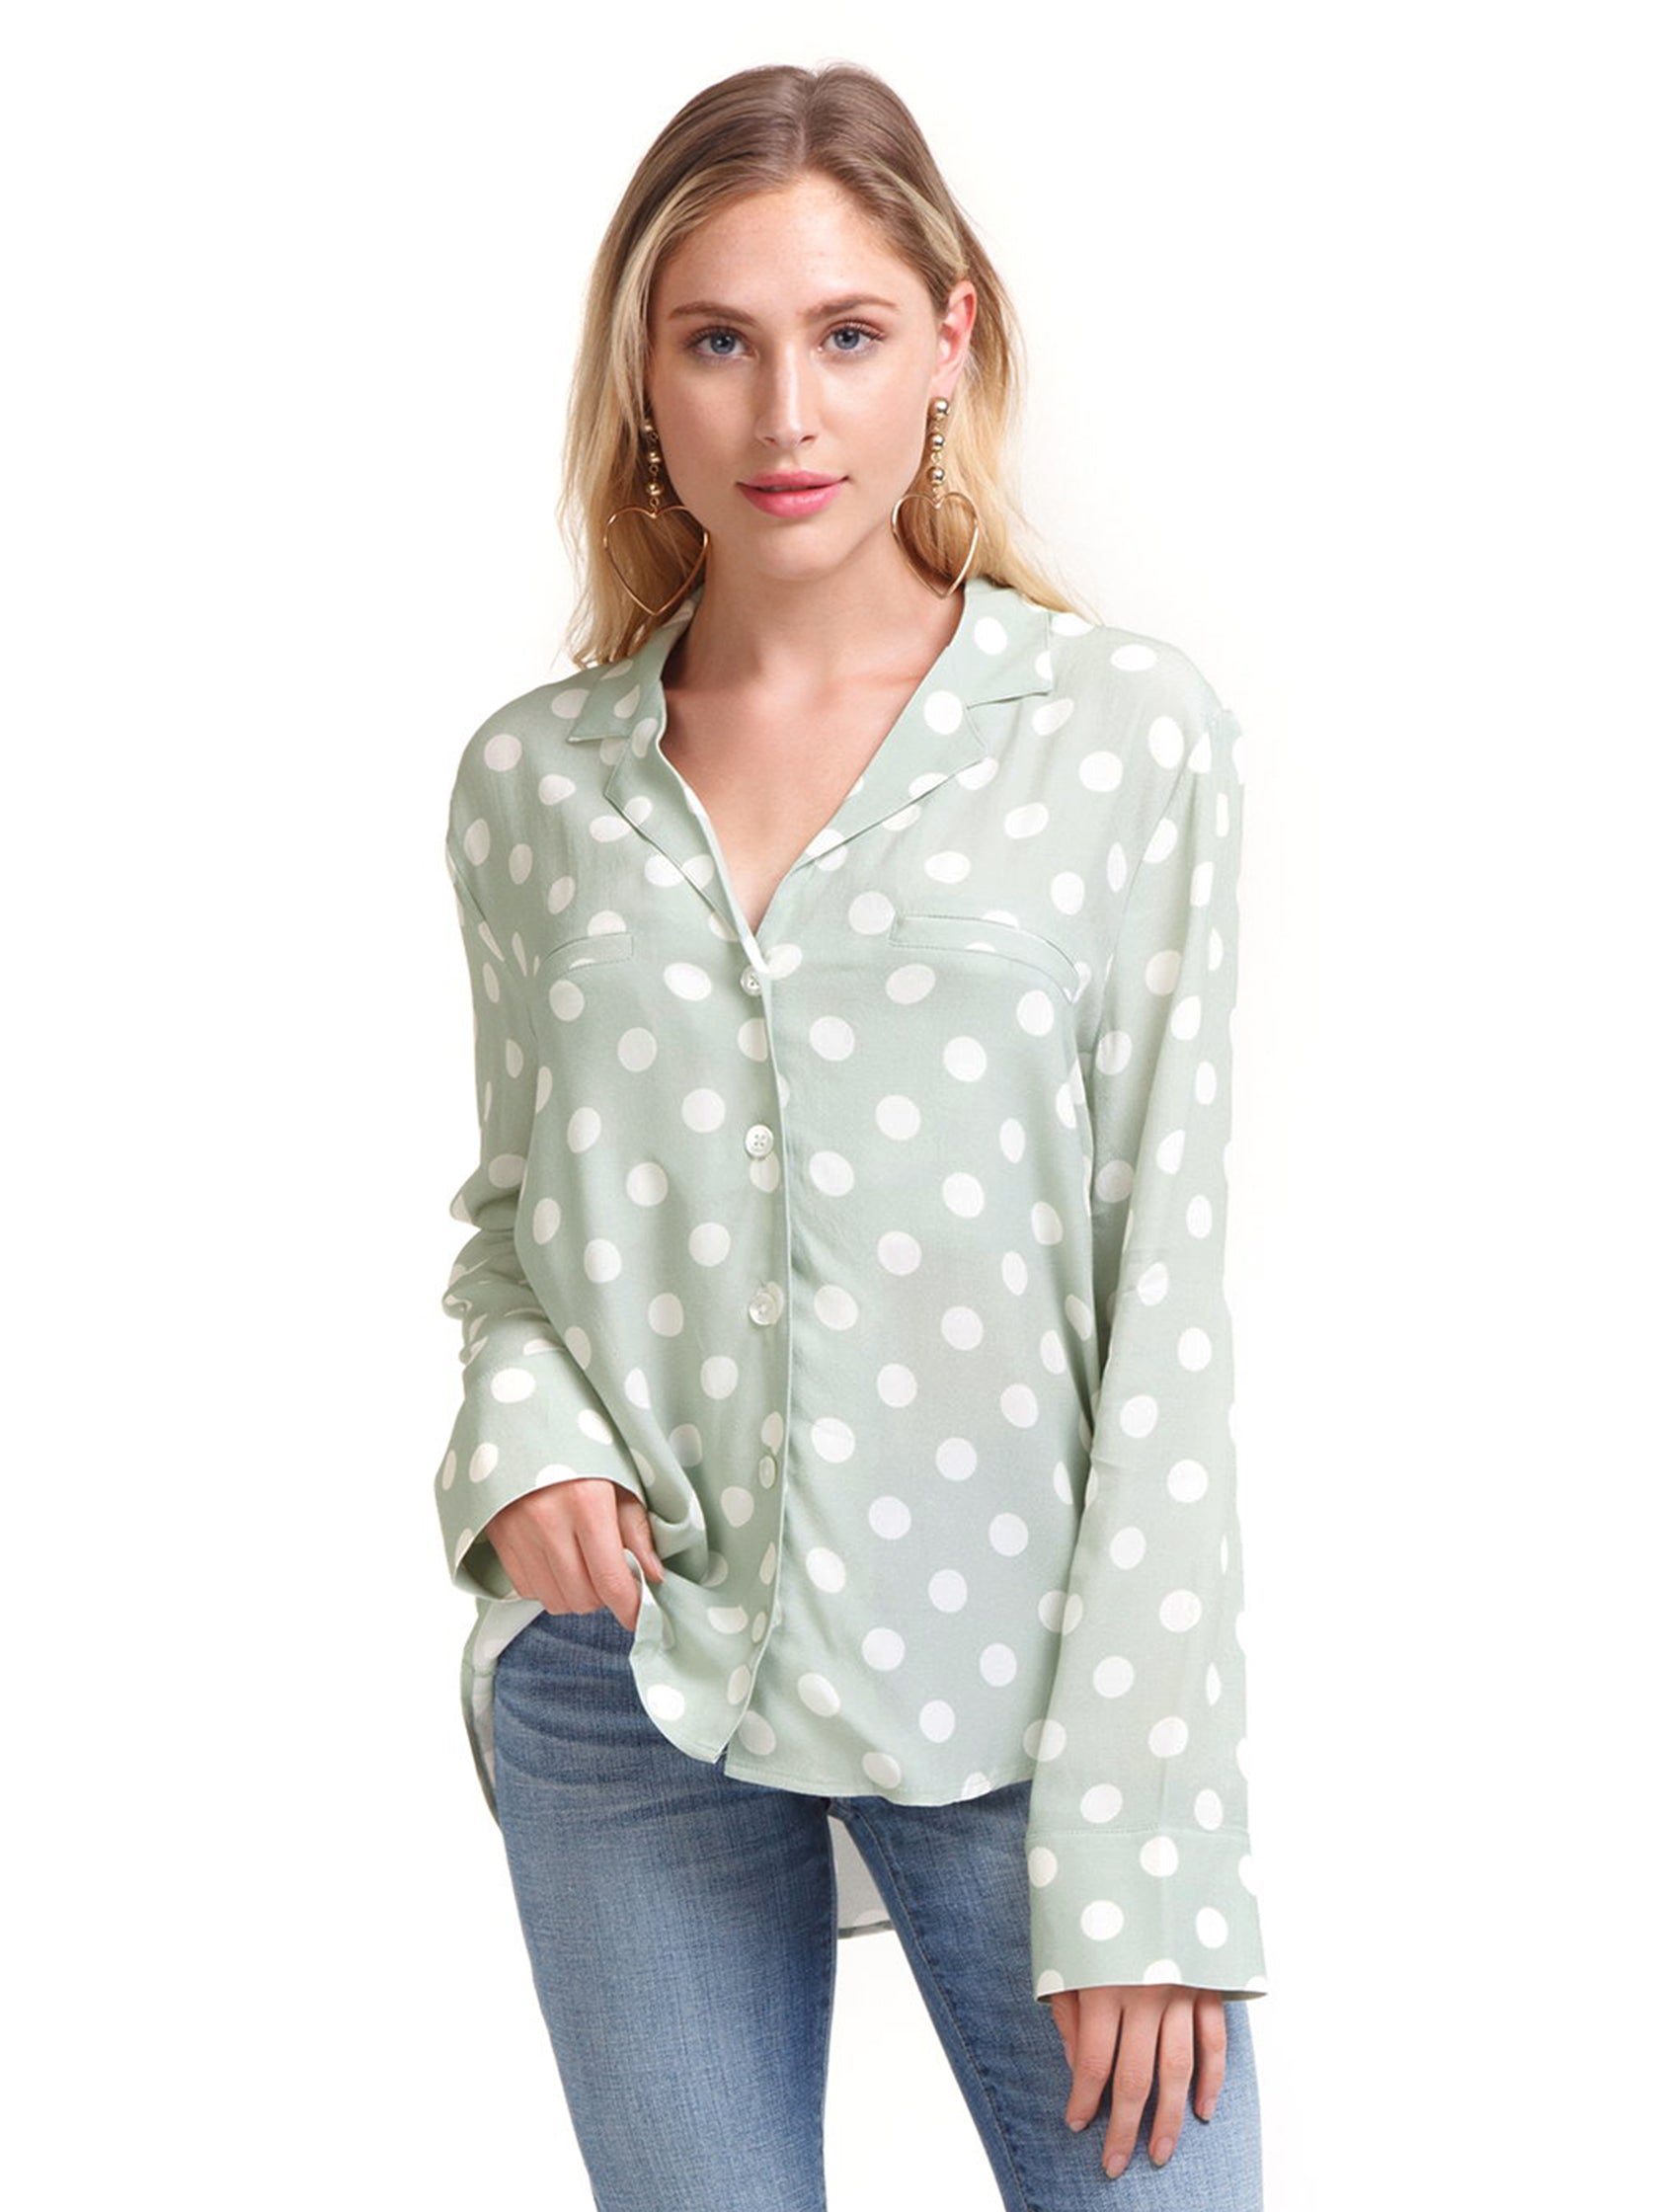 Women outfit in a top rental from Capulet called Geneva Polka Dot Buttondown